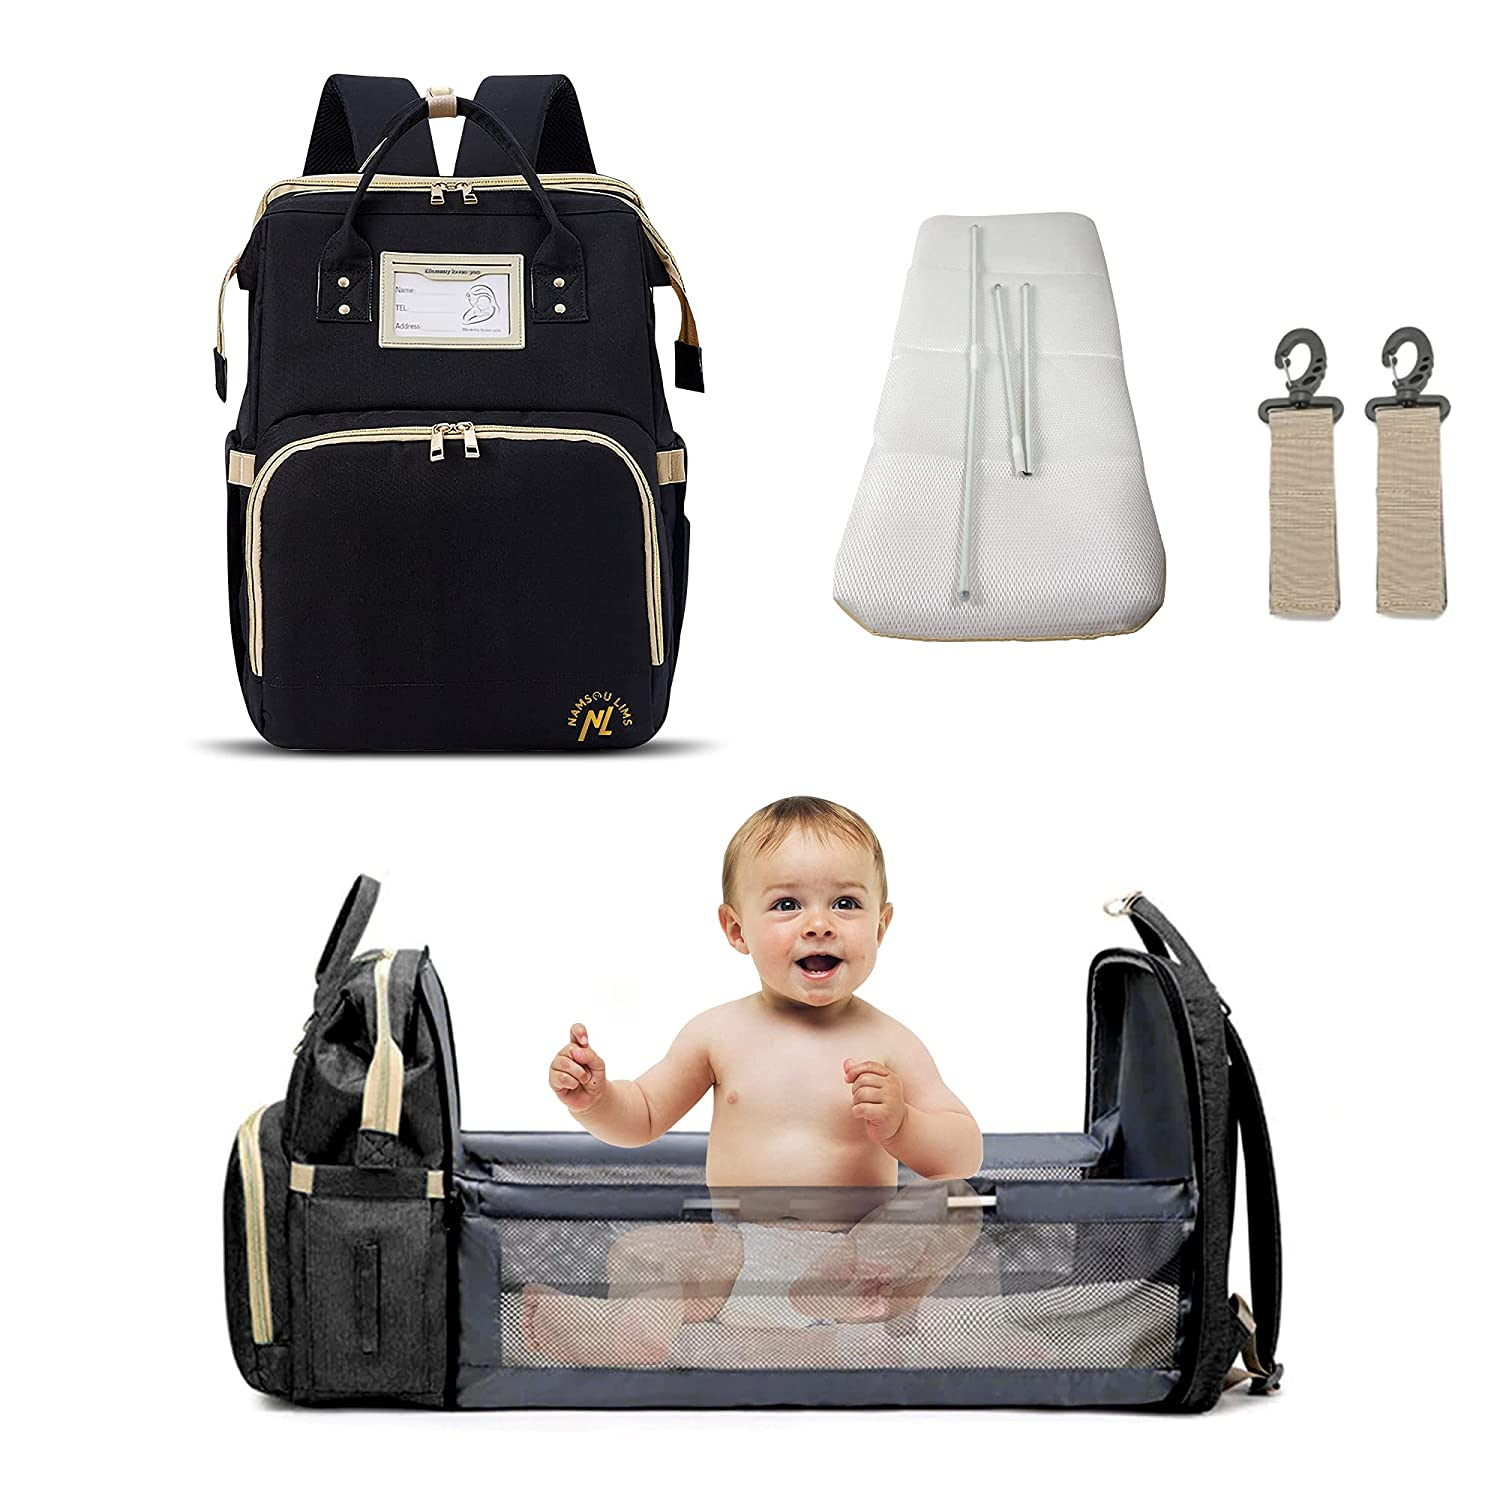 namsou lims Diaper Backpack with Changing Station Black 16.9